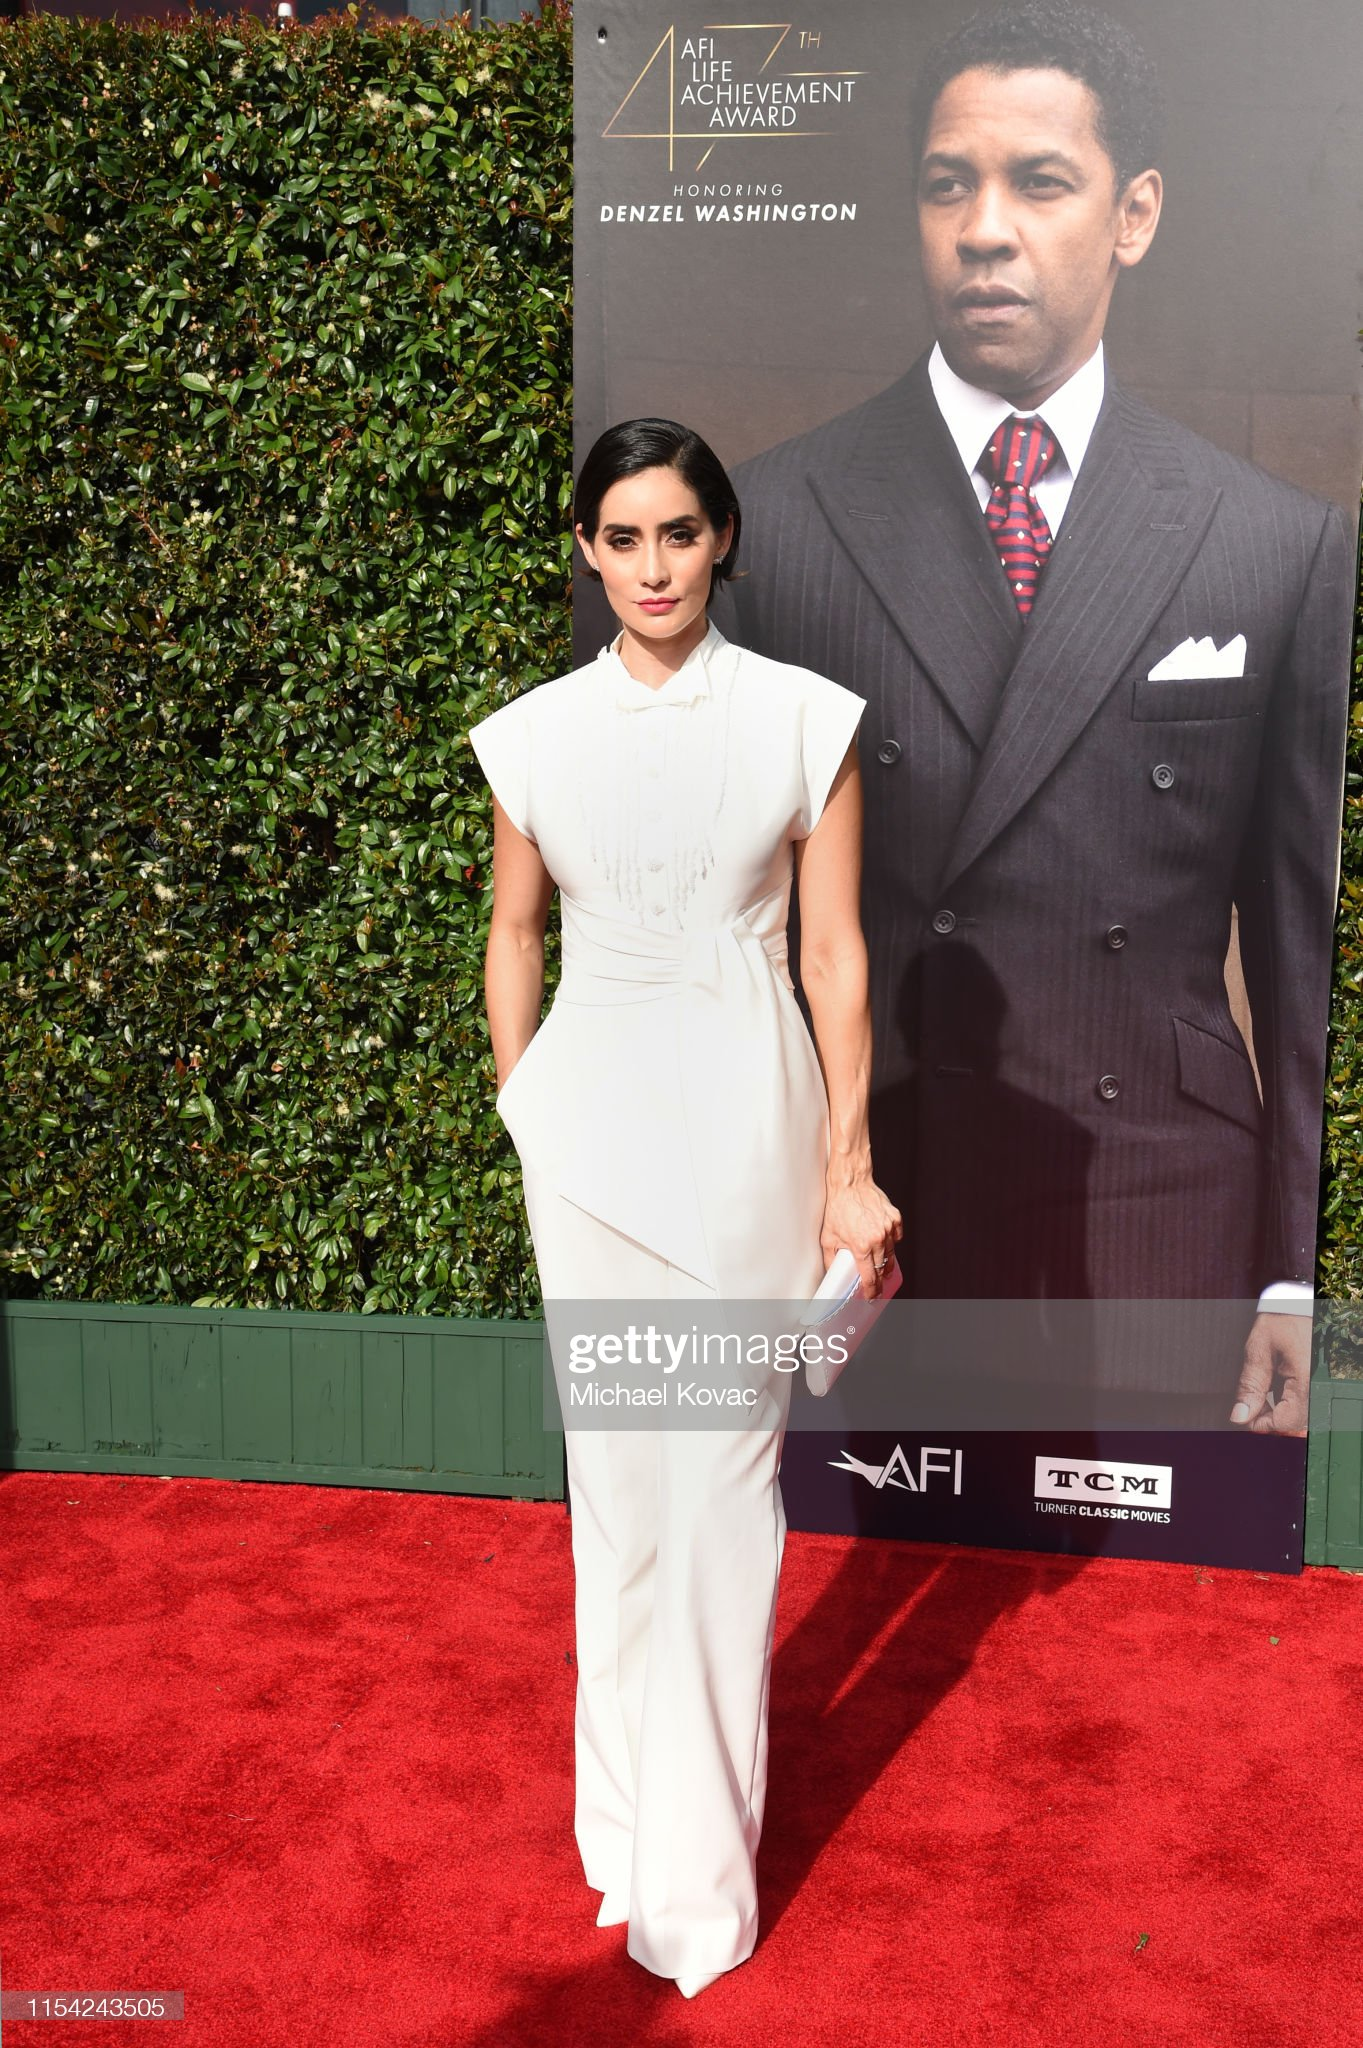 https://media.gettyimages.com/photos/paola-nez-attends-the-47th-afi-life-achievement-award-honoring-denzel-picture-id1154243505?s=2048x2048